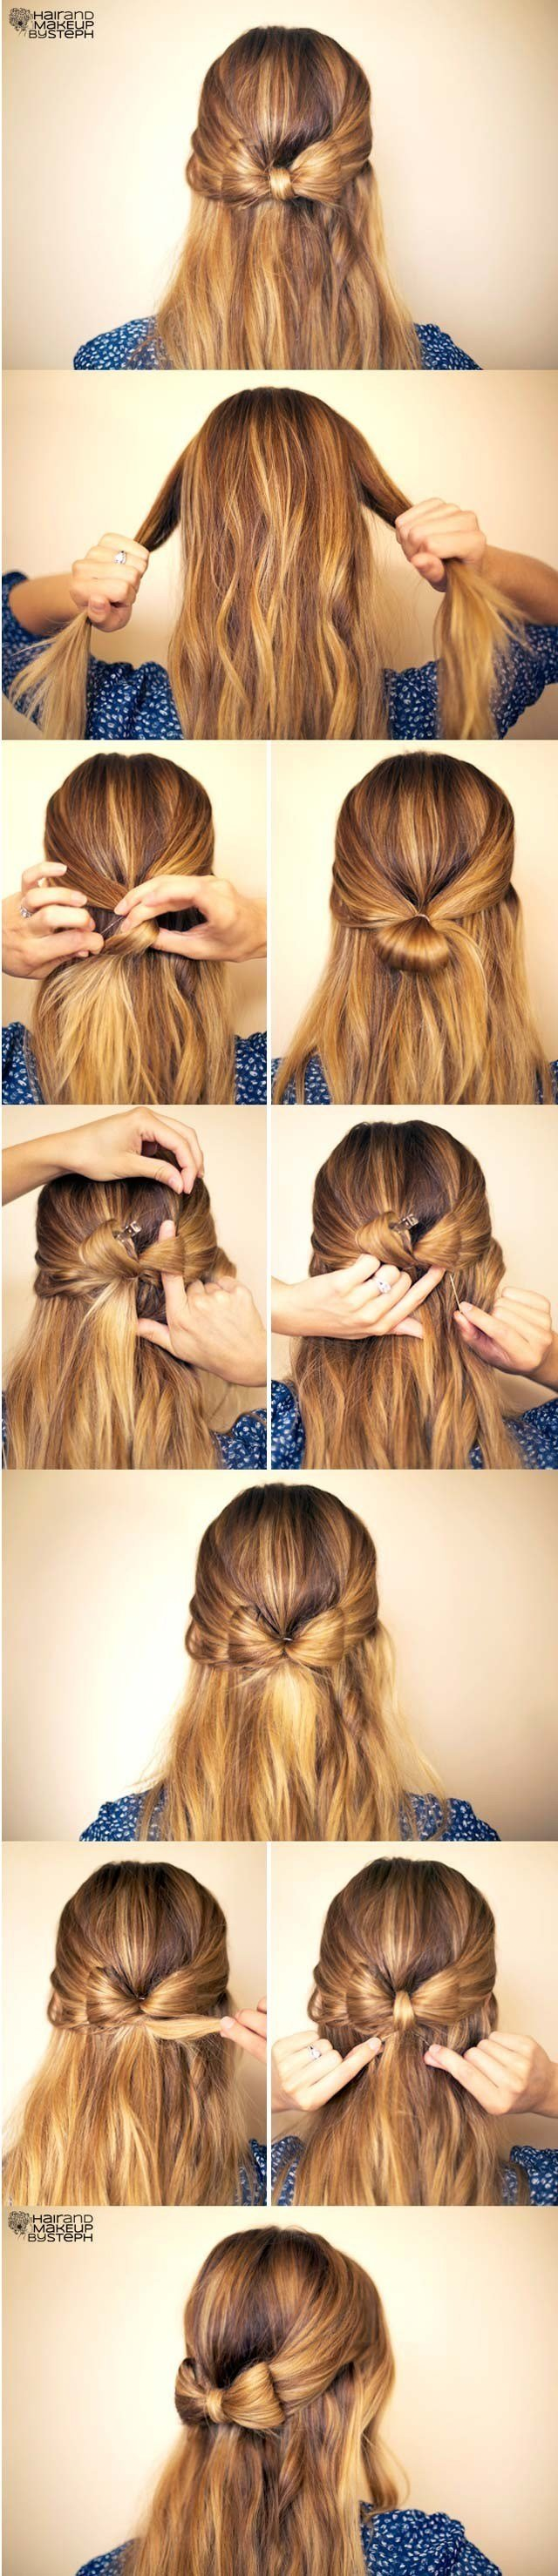 New 15 Cute Hairstyles Step By Step Hairstyles For Long Hair Ideas With Pictures